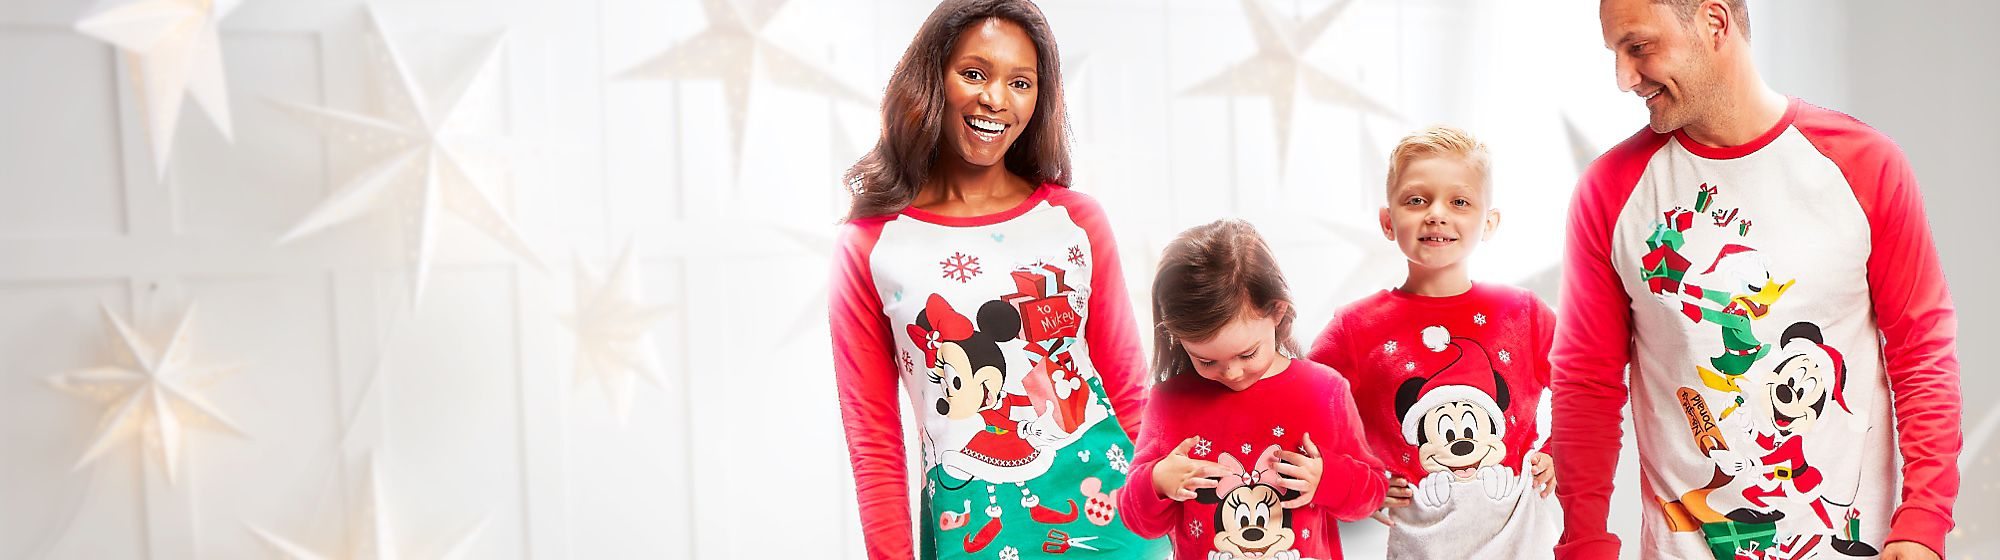 Christmas Pyjamas Dream of a Very Merry Christmas